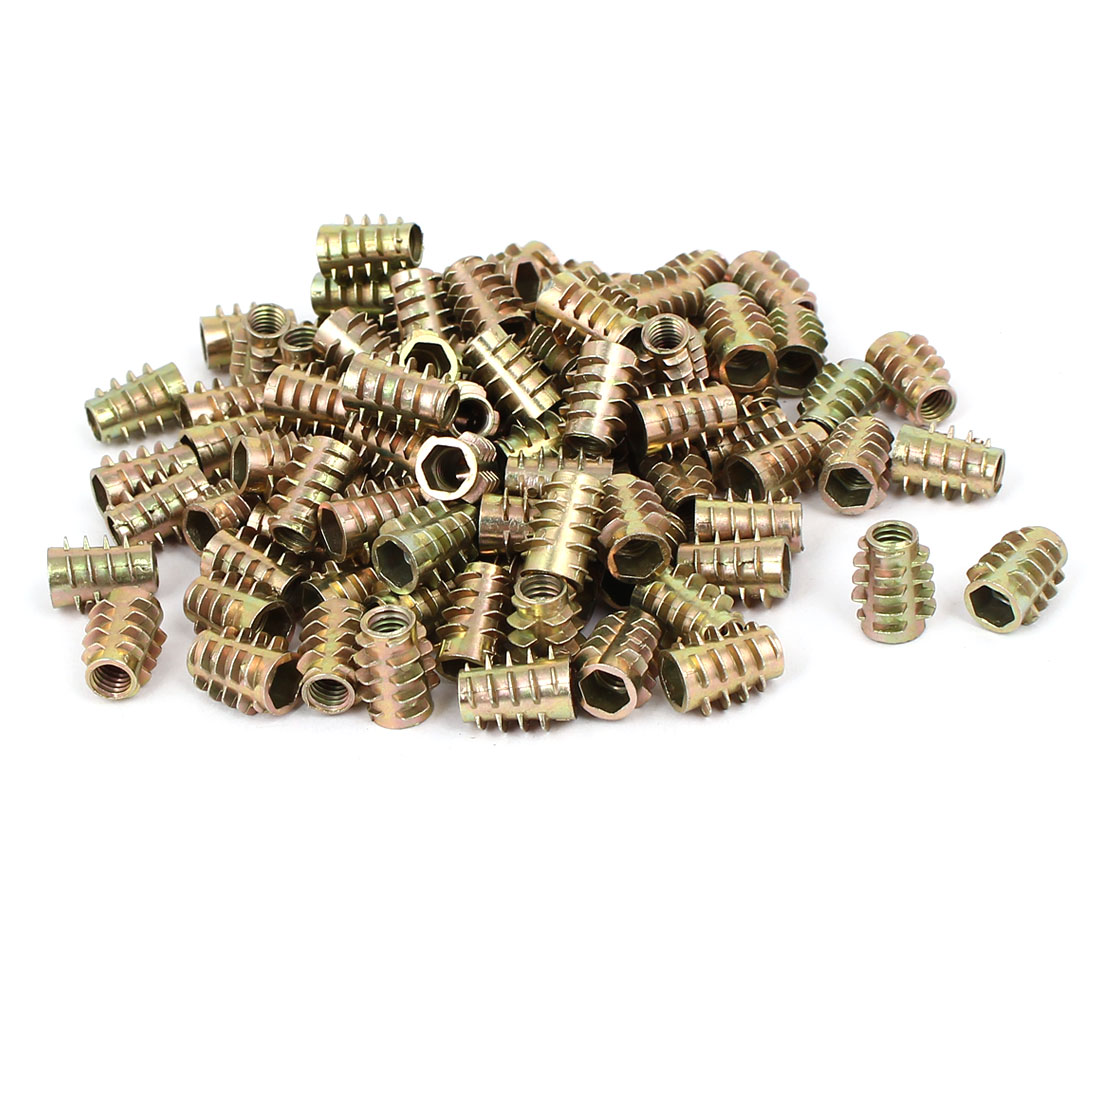 Wood Furniture Zinc Alloy Hex Socket Insert Screws E-Nuts M6x15mm 100pcs